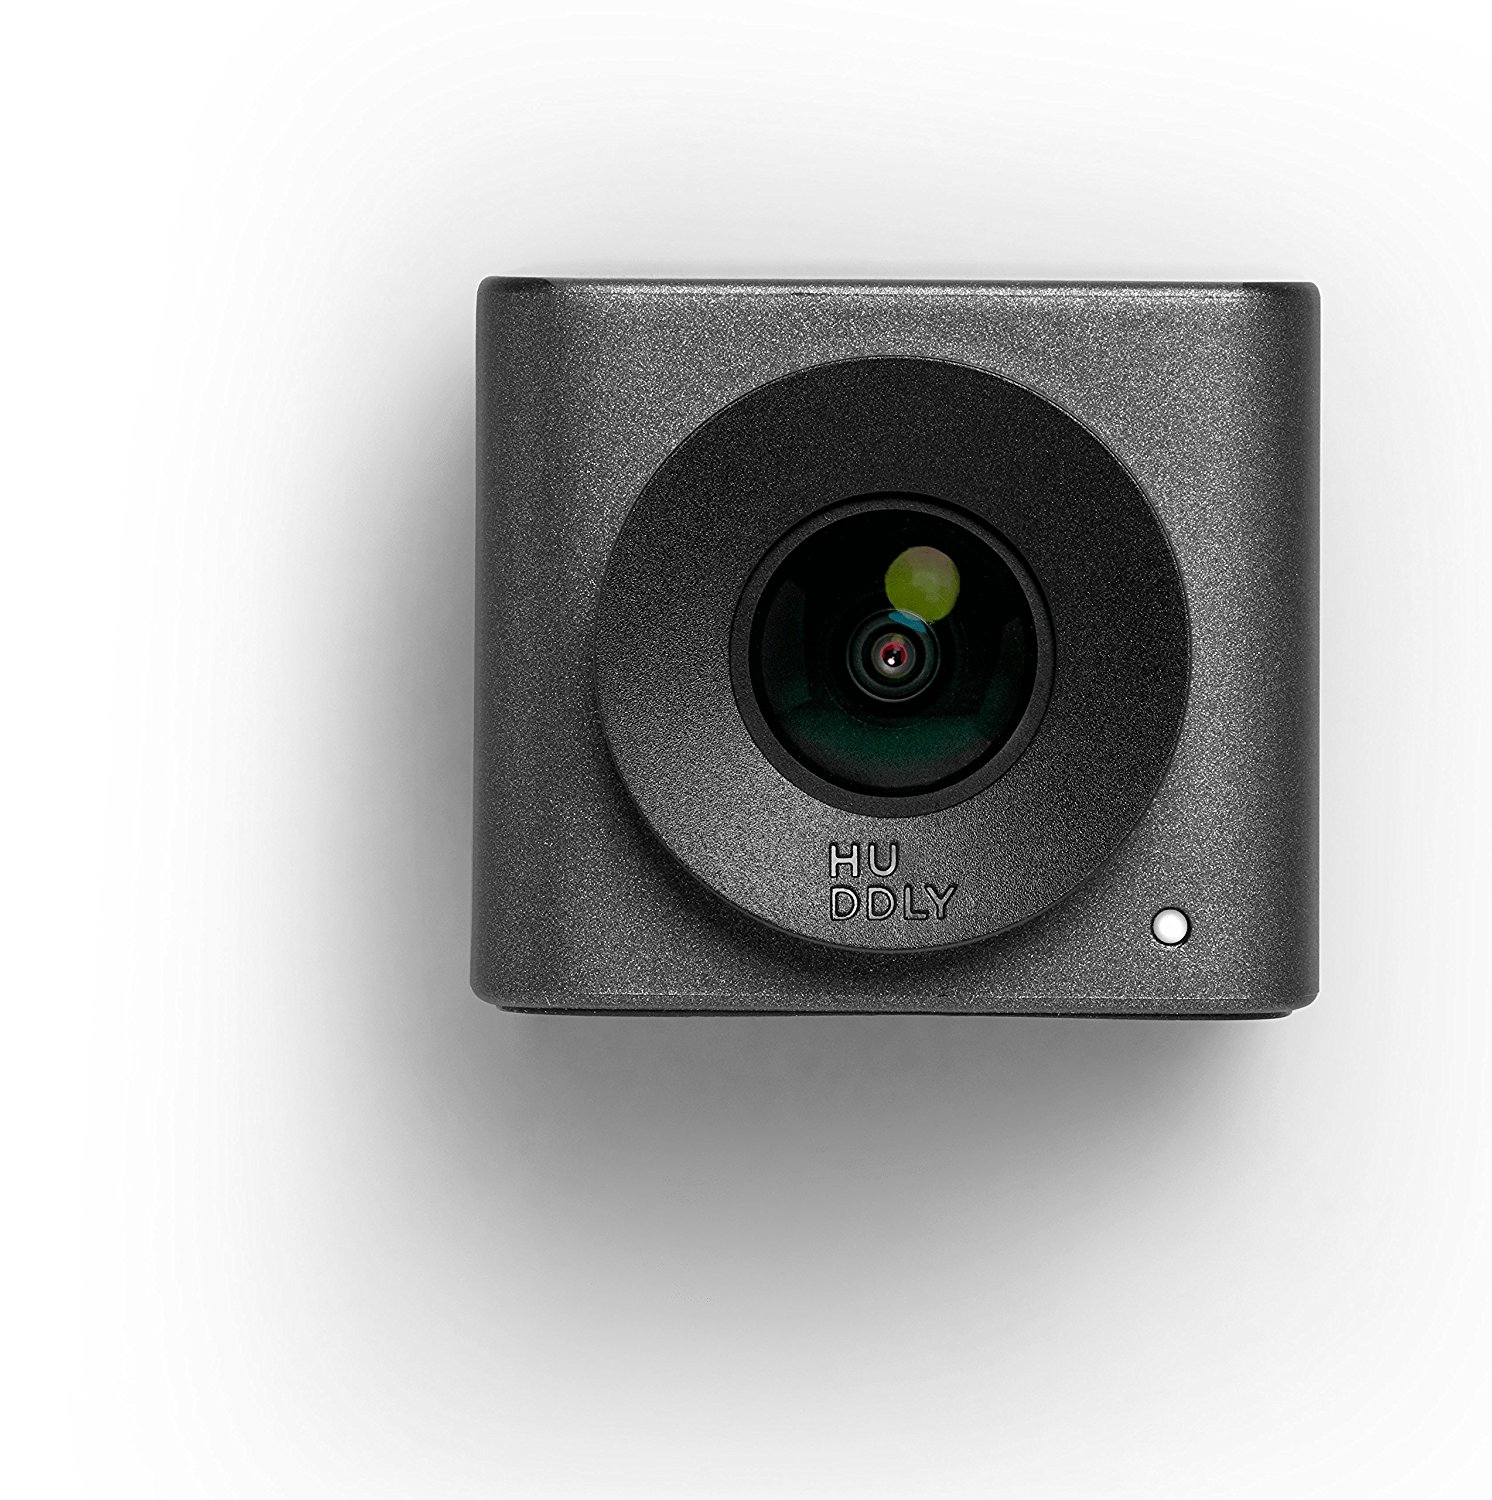 Huddly GO Video Conferencing Camera